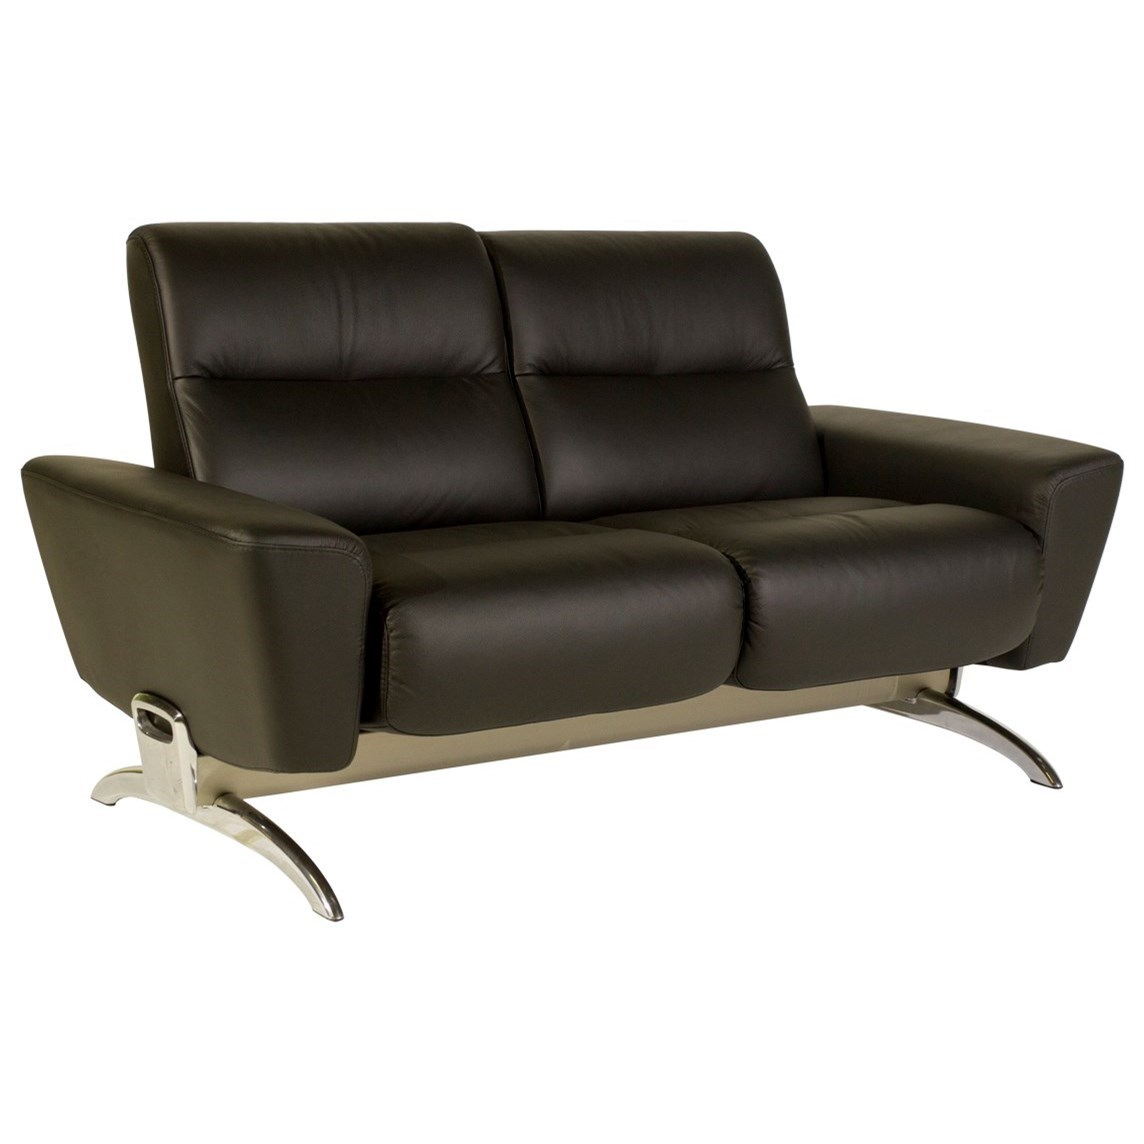 Stressless By Ekornes Stressless You Julia 2 Seater Loveseat With Balanceadapt Conlin 39 S